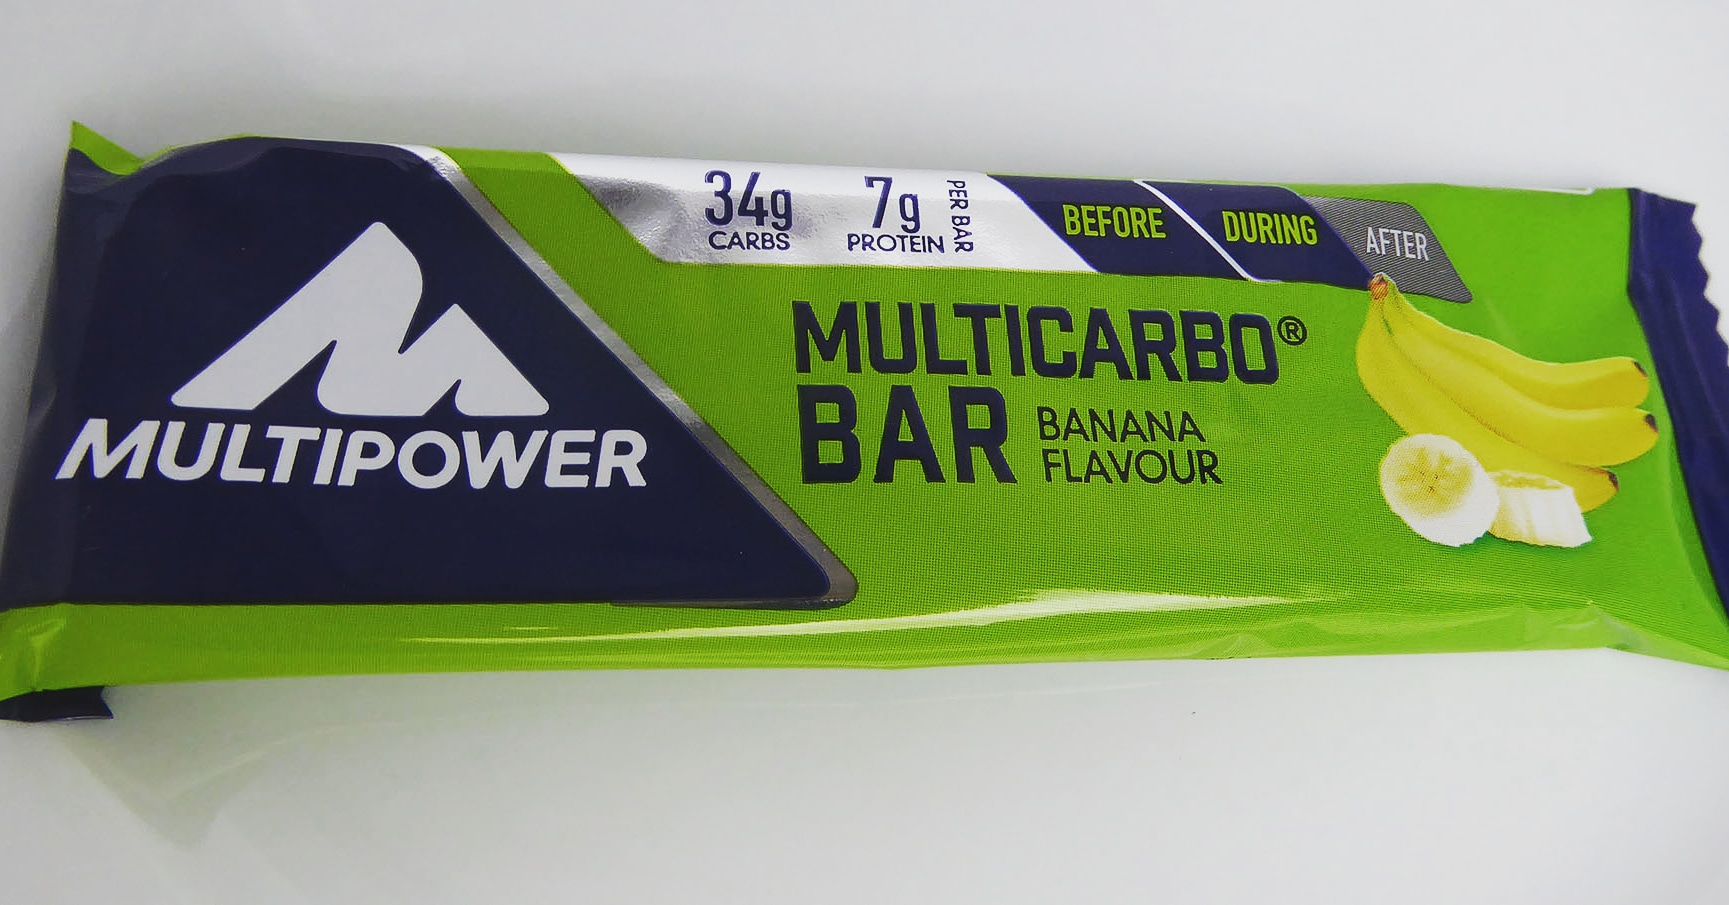 Multipower Multicarbo Protein Bar Banana Flavour